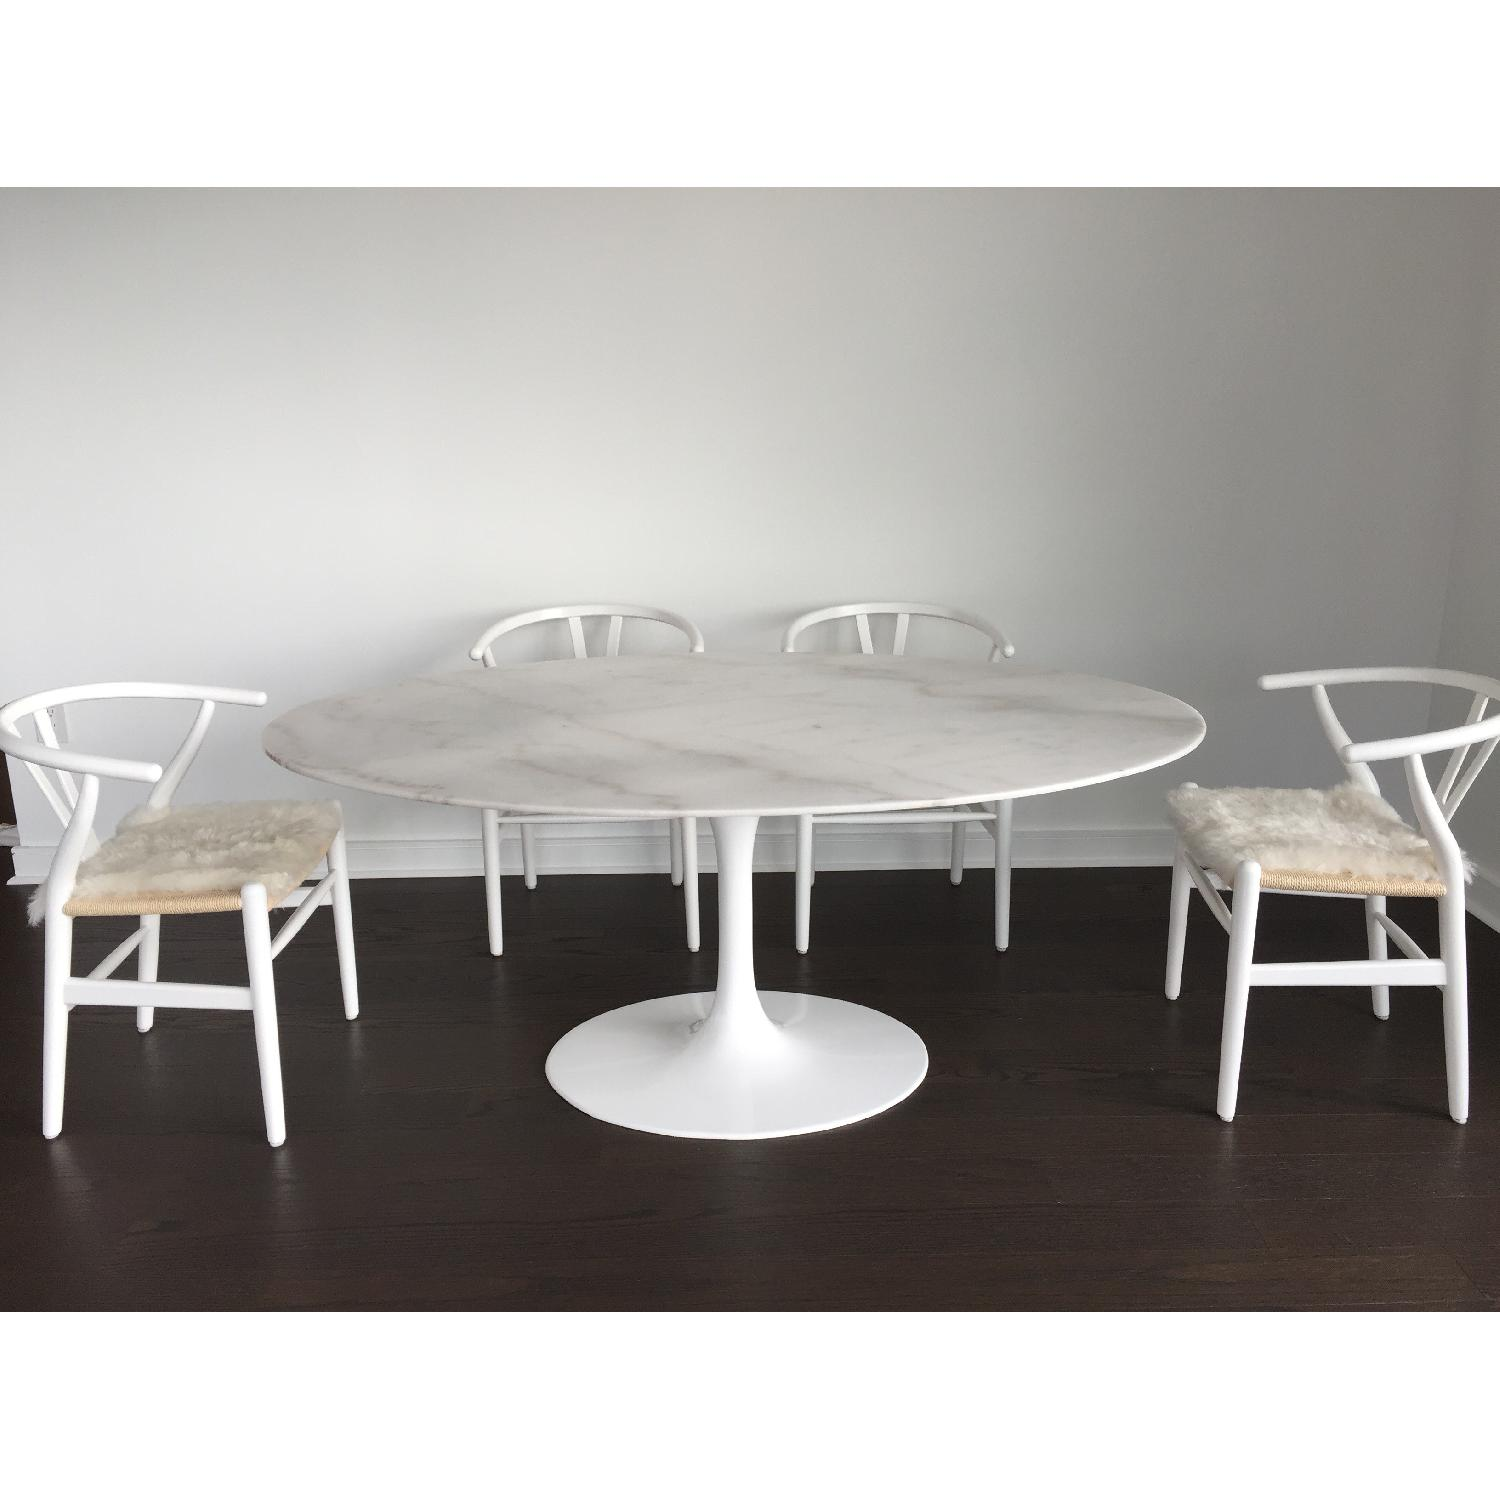 Rove Concepts Oval Tulip Table - image-1